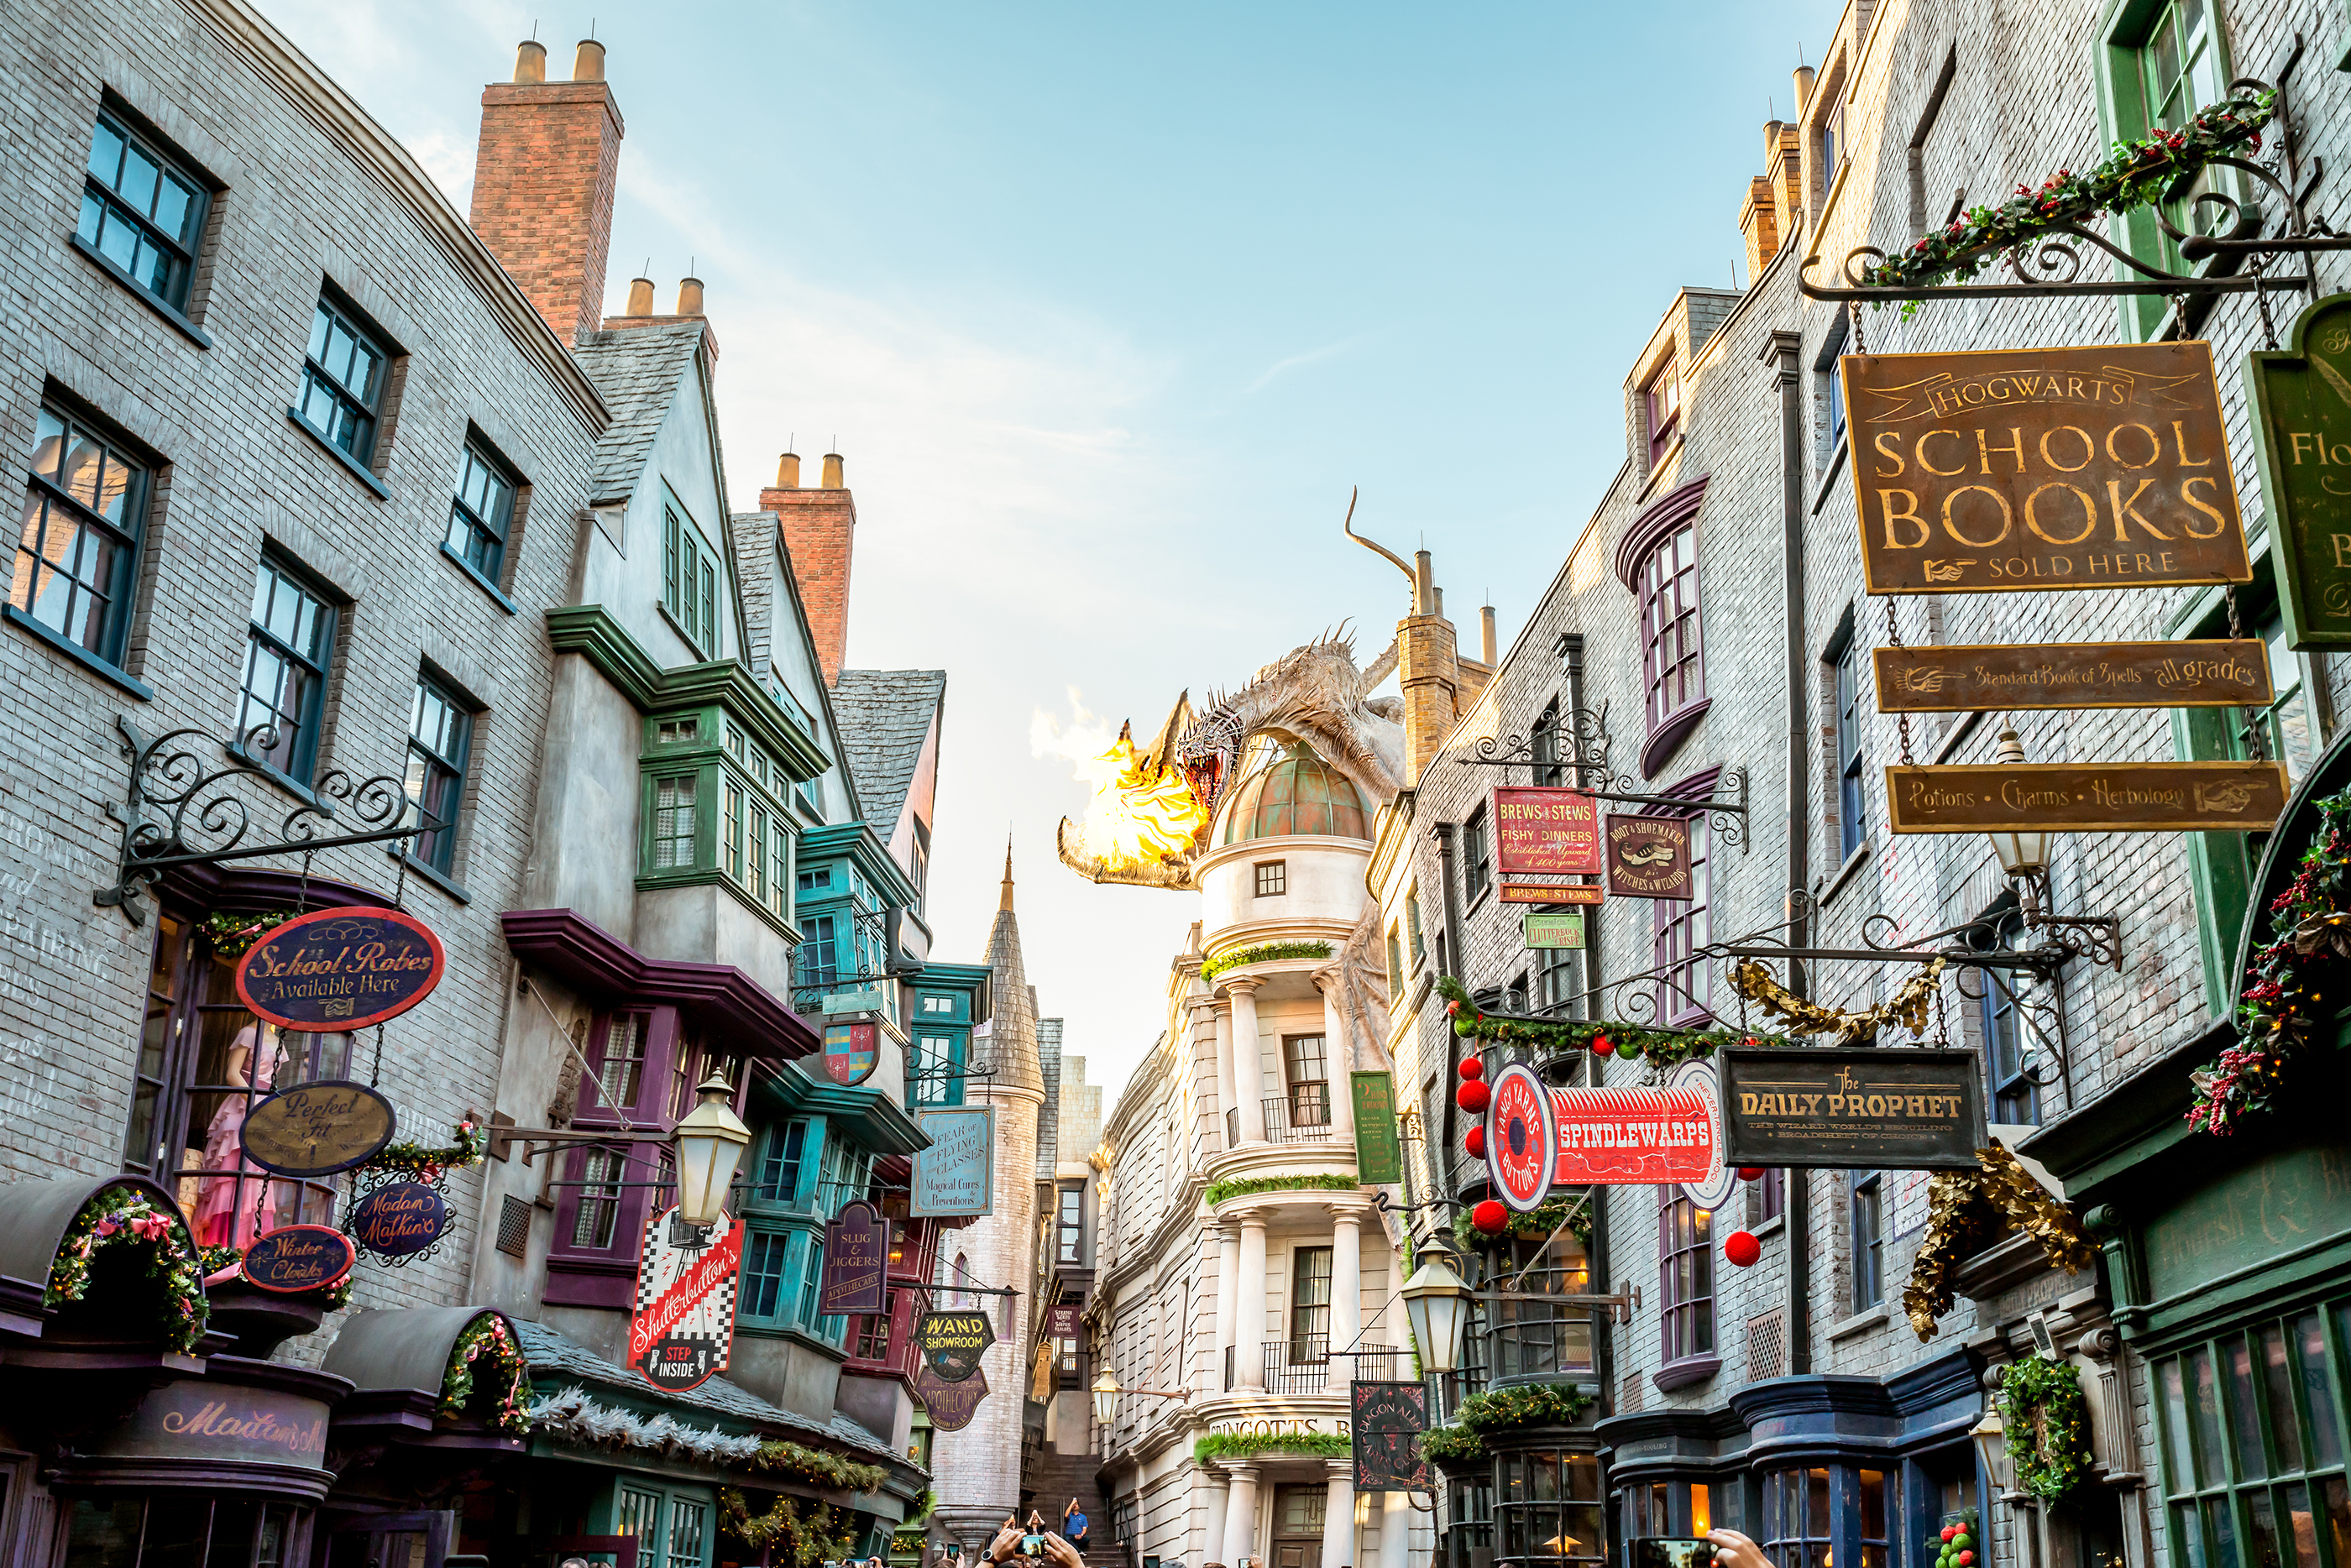 The Wizarding World of Harry Potter – The iconic dragon at Diagon Alley, Universal Studios Florida.